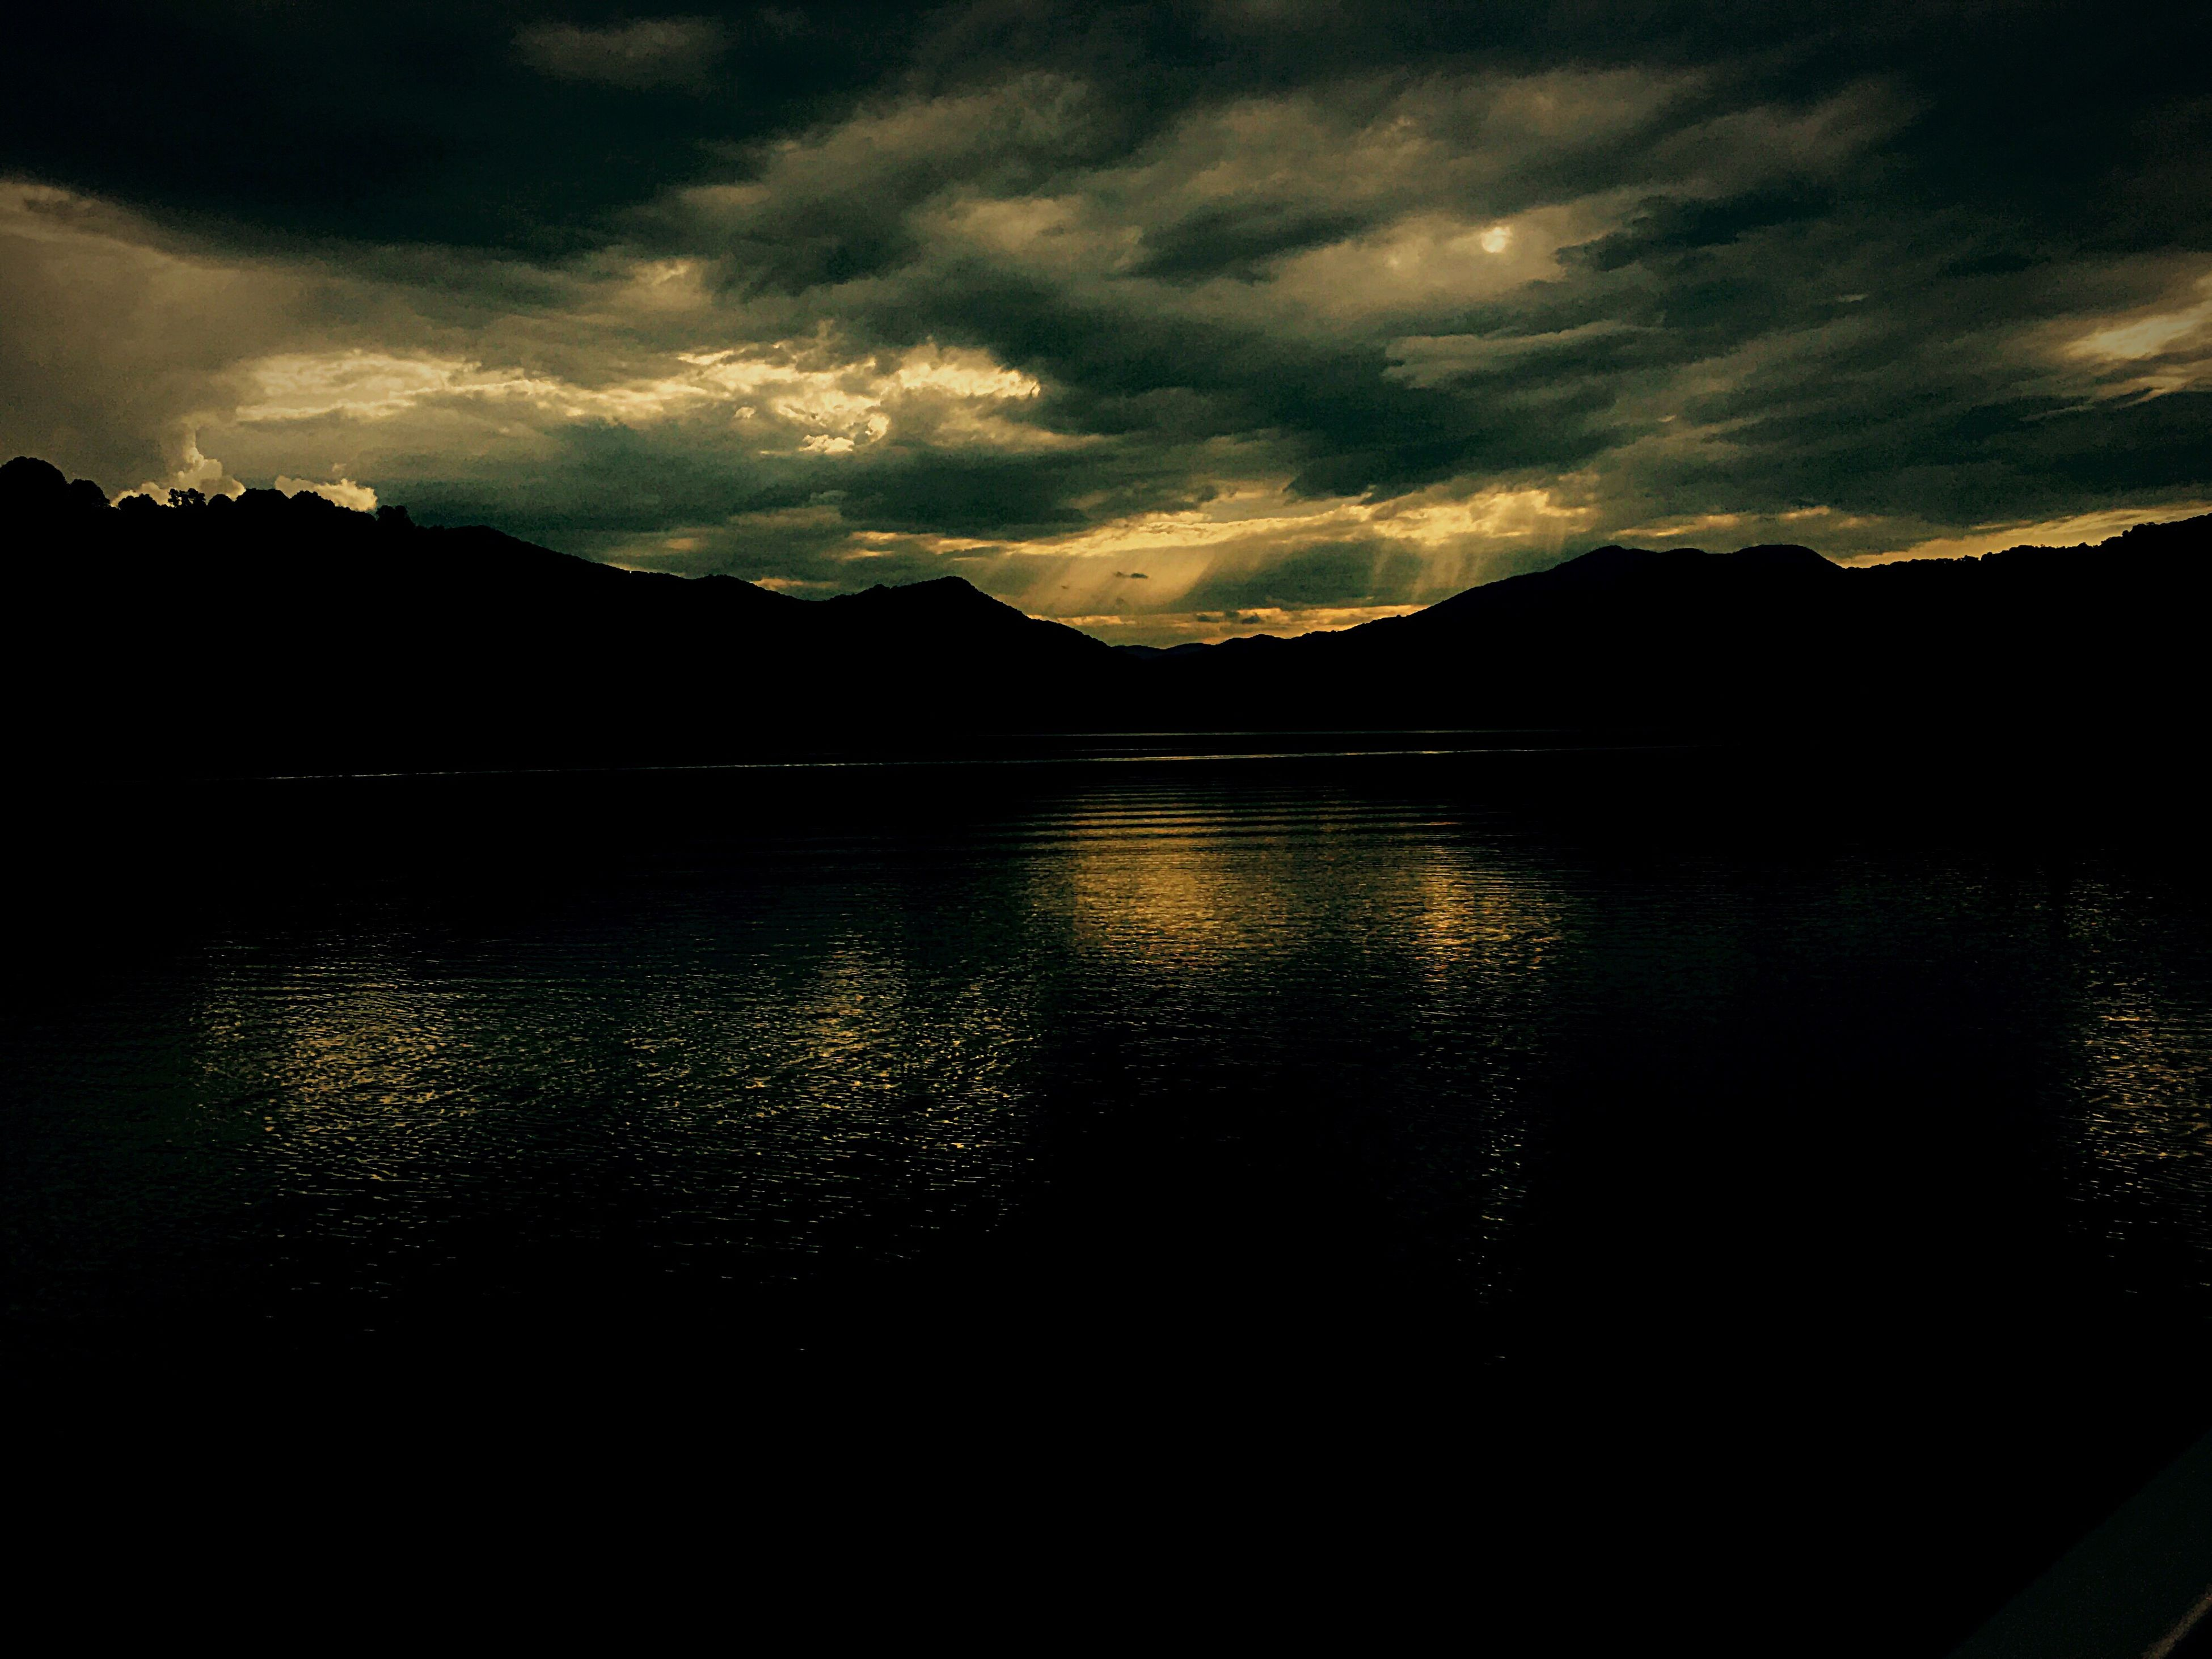 mountain, water, sky, scenics, tranquil scene, sunset, tranquility, mountain range, beauty in nature, cloud - sky, lake, nature, idyllic, cloud, calm, dark, outdoors, no people, cloudy, non-urban scene, remote, landscape, majestic